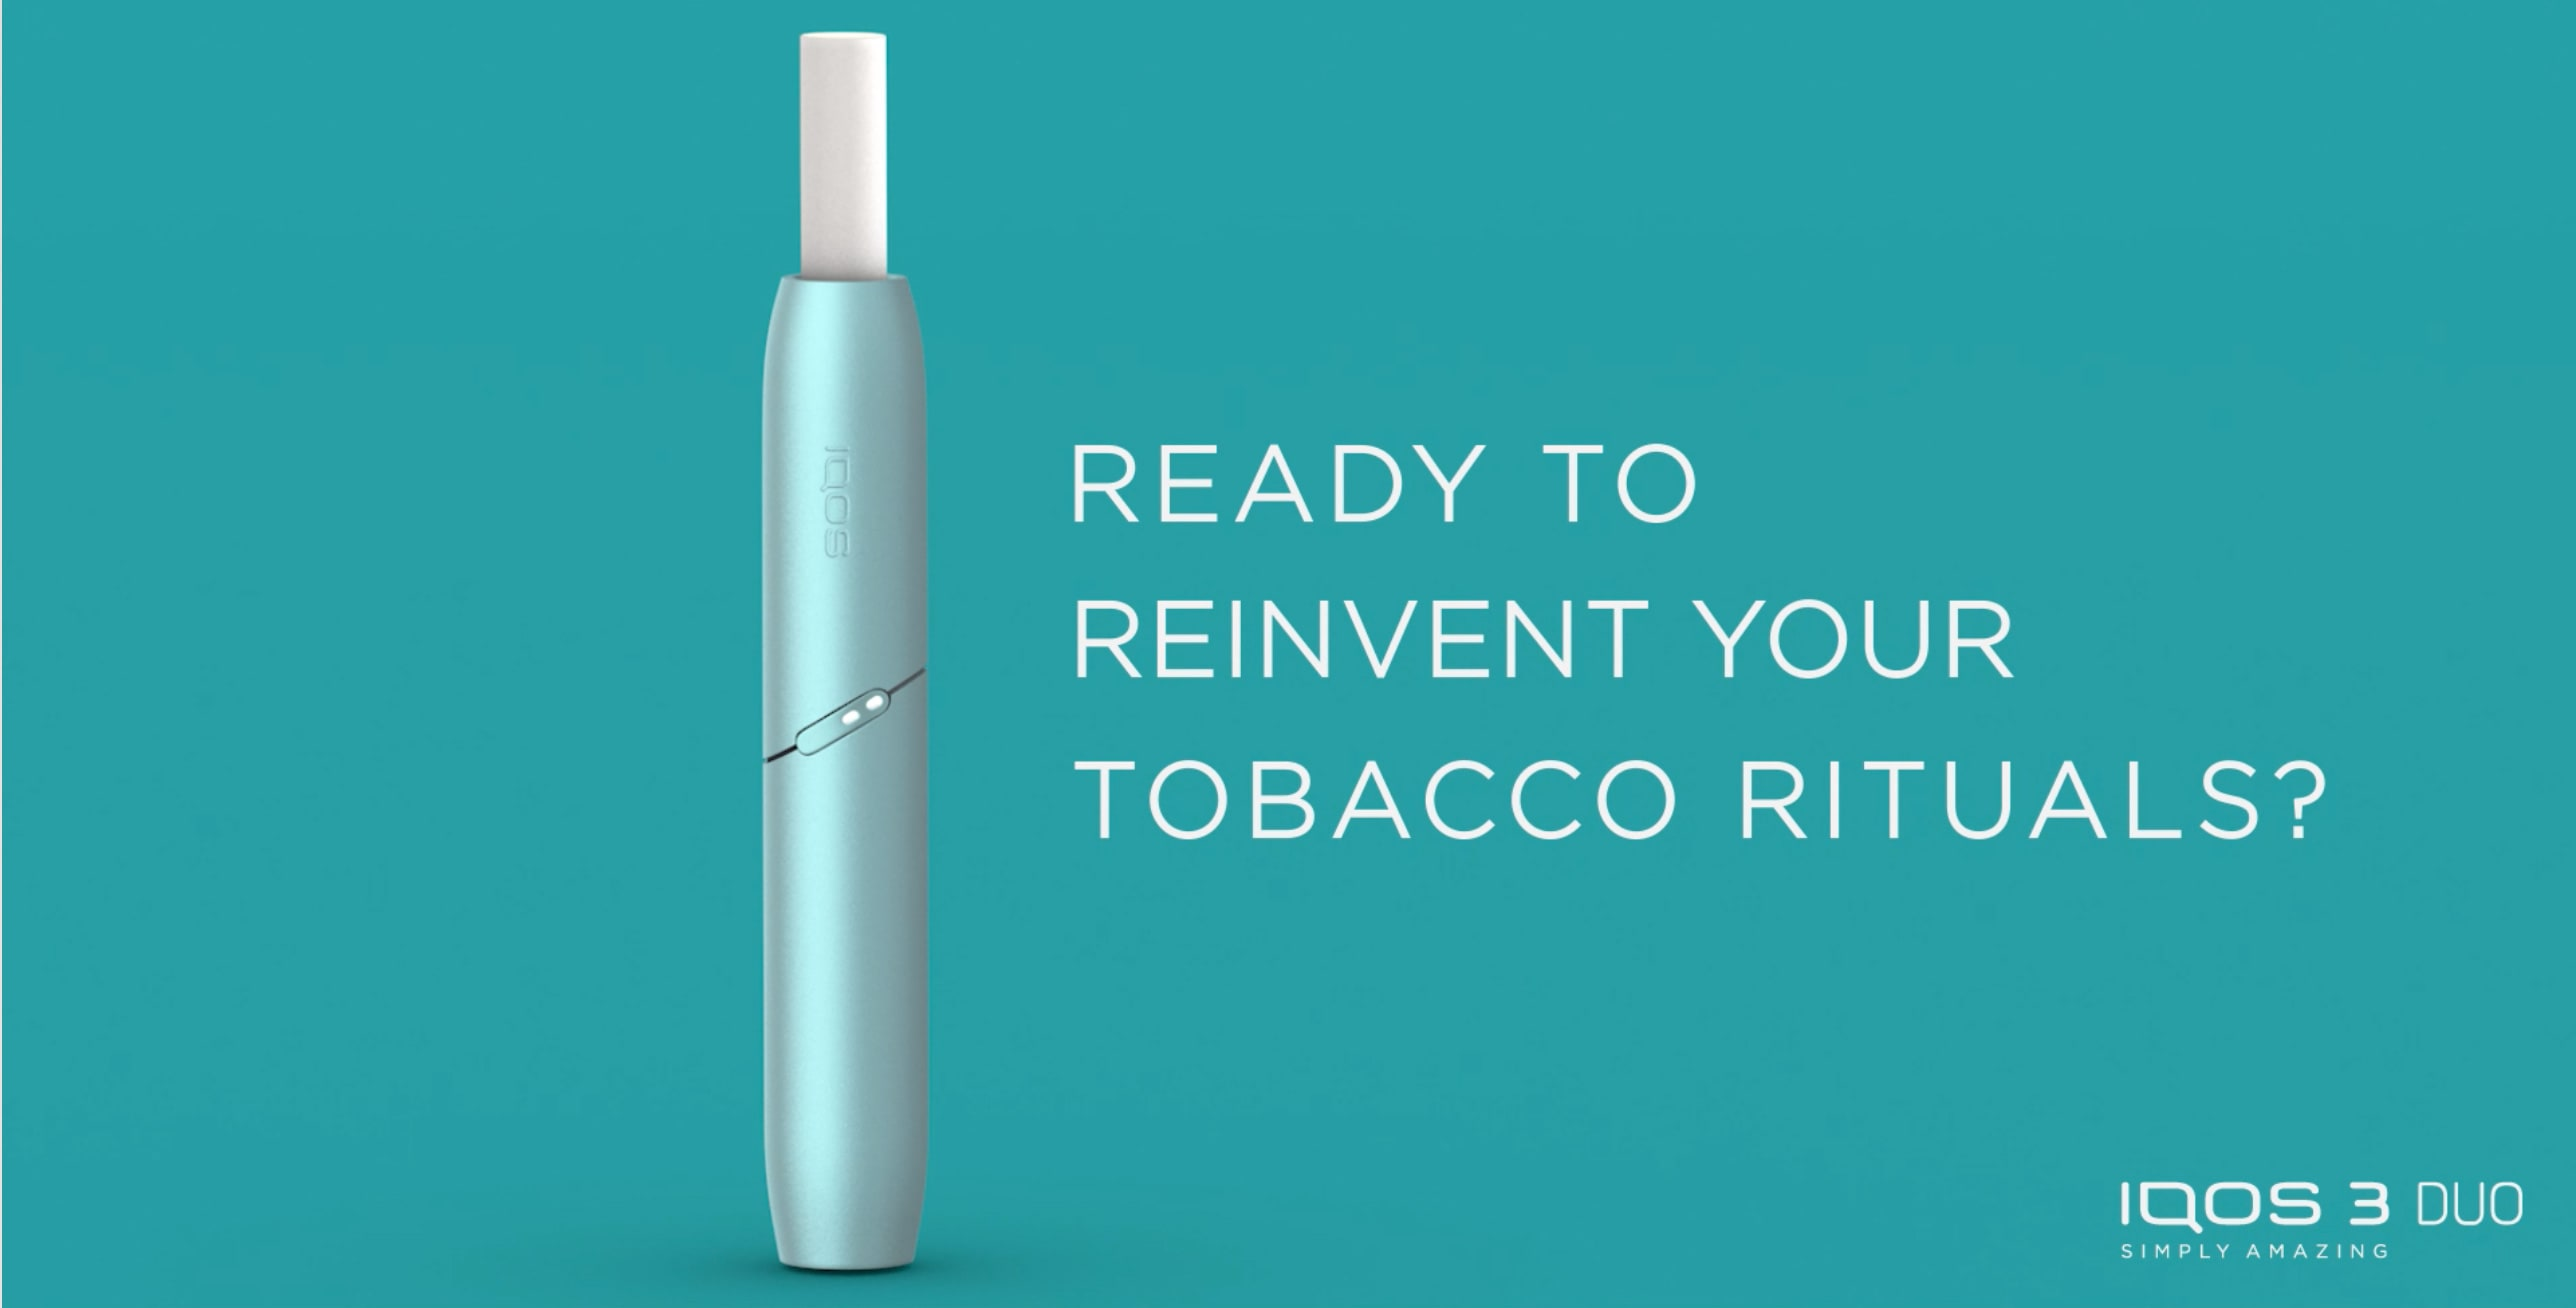 Ready to reinvent your tobacco rituals?